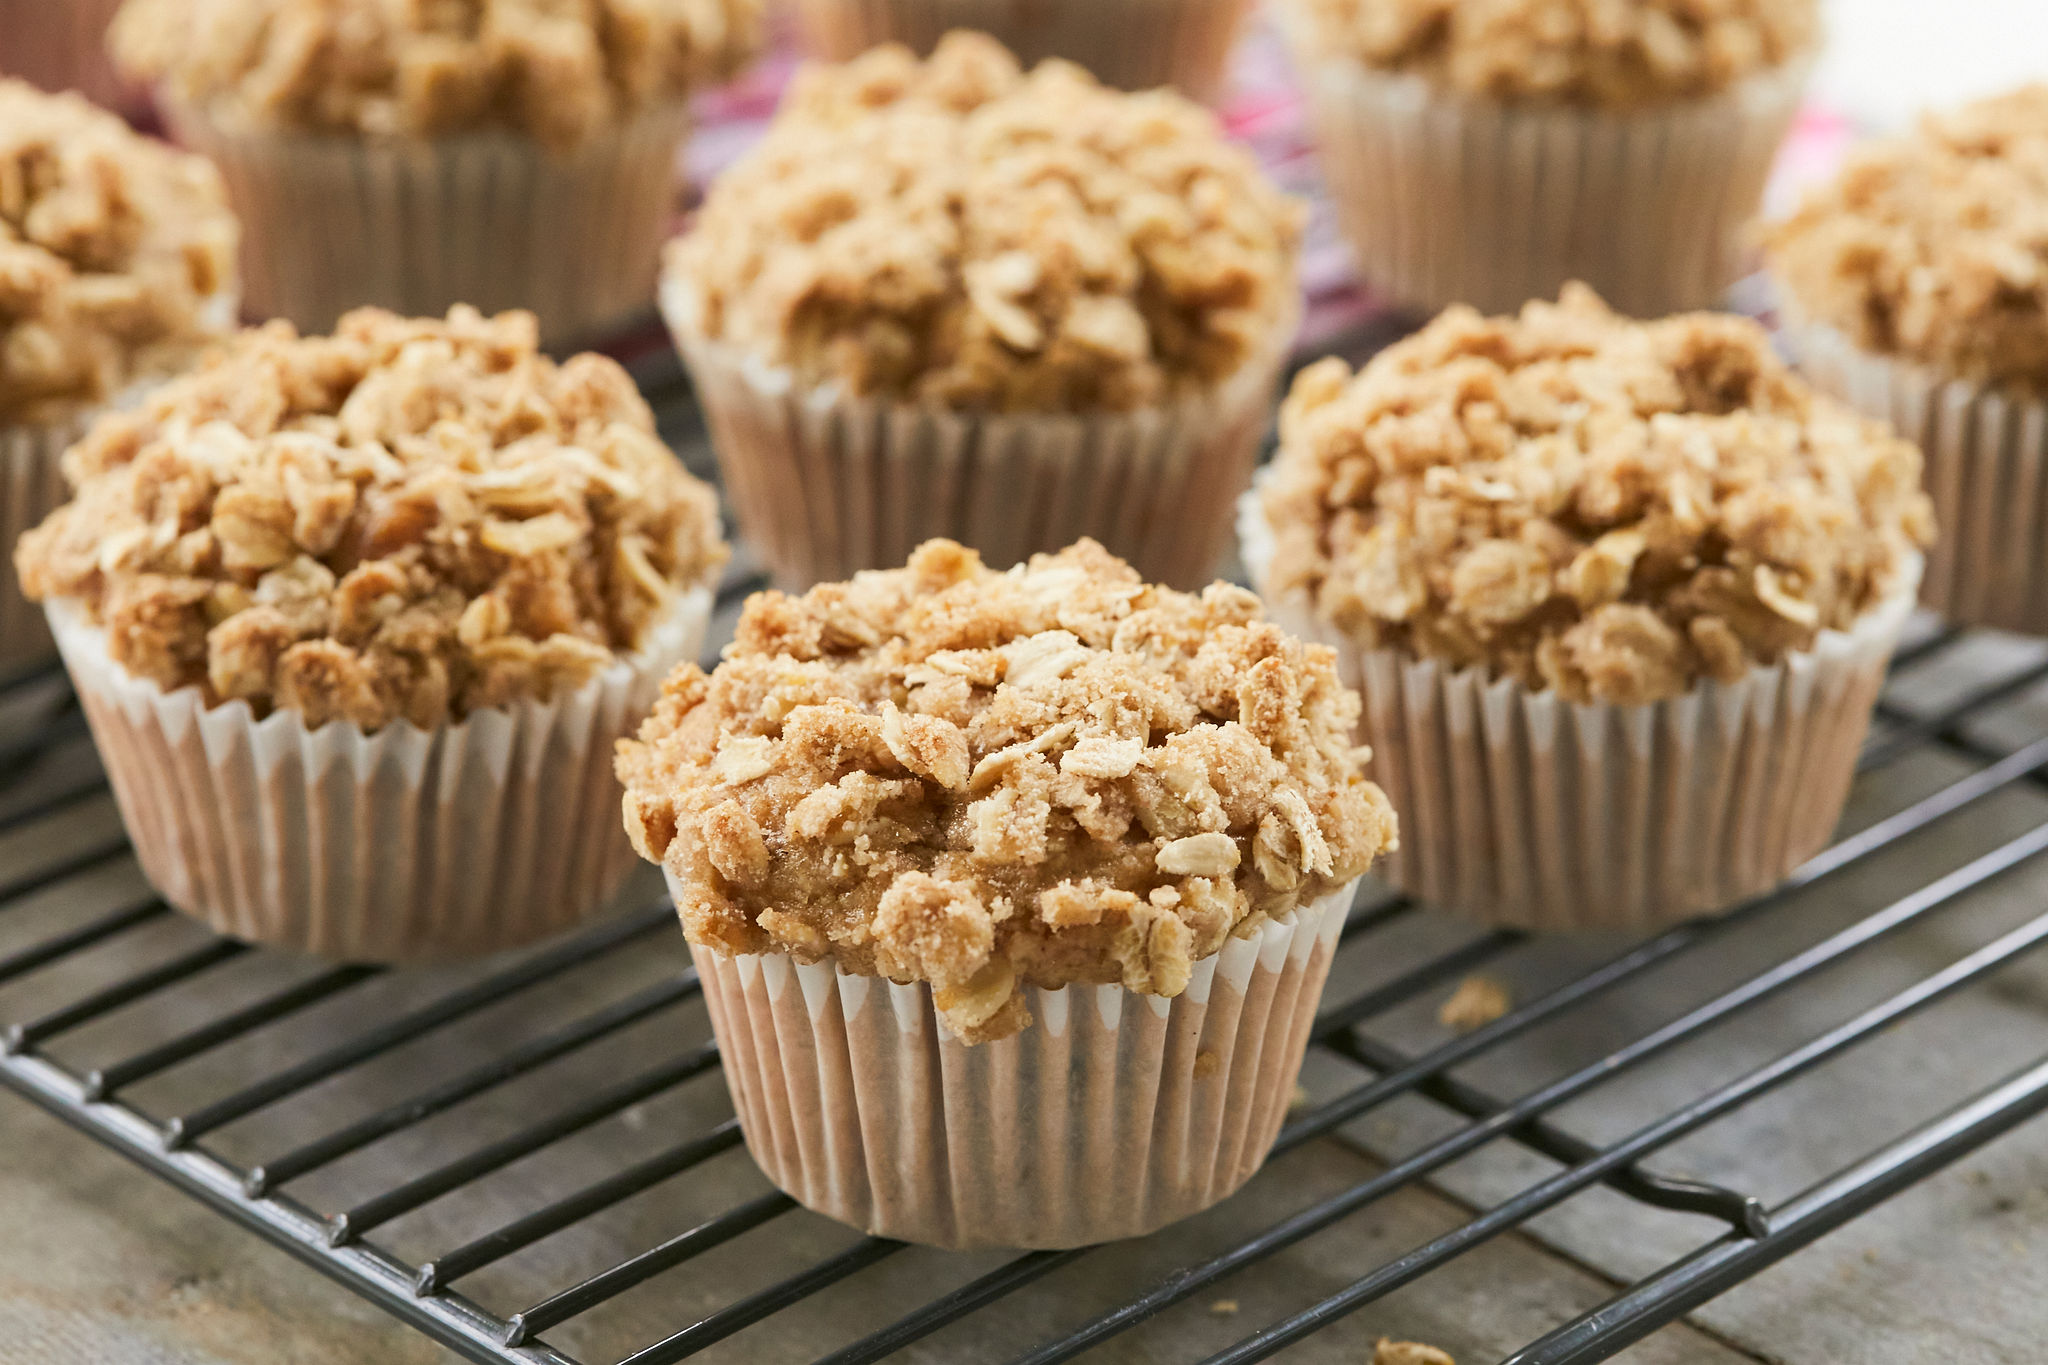 Banana Nut Muffins arranged and topped with streusel.